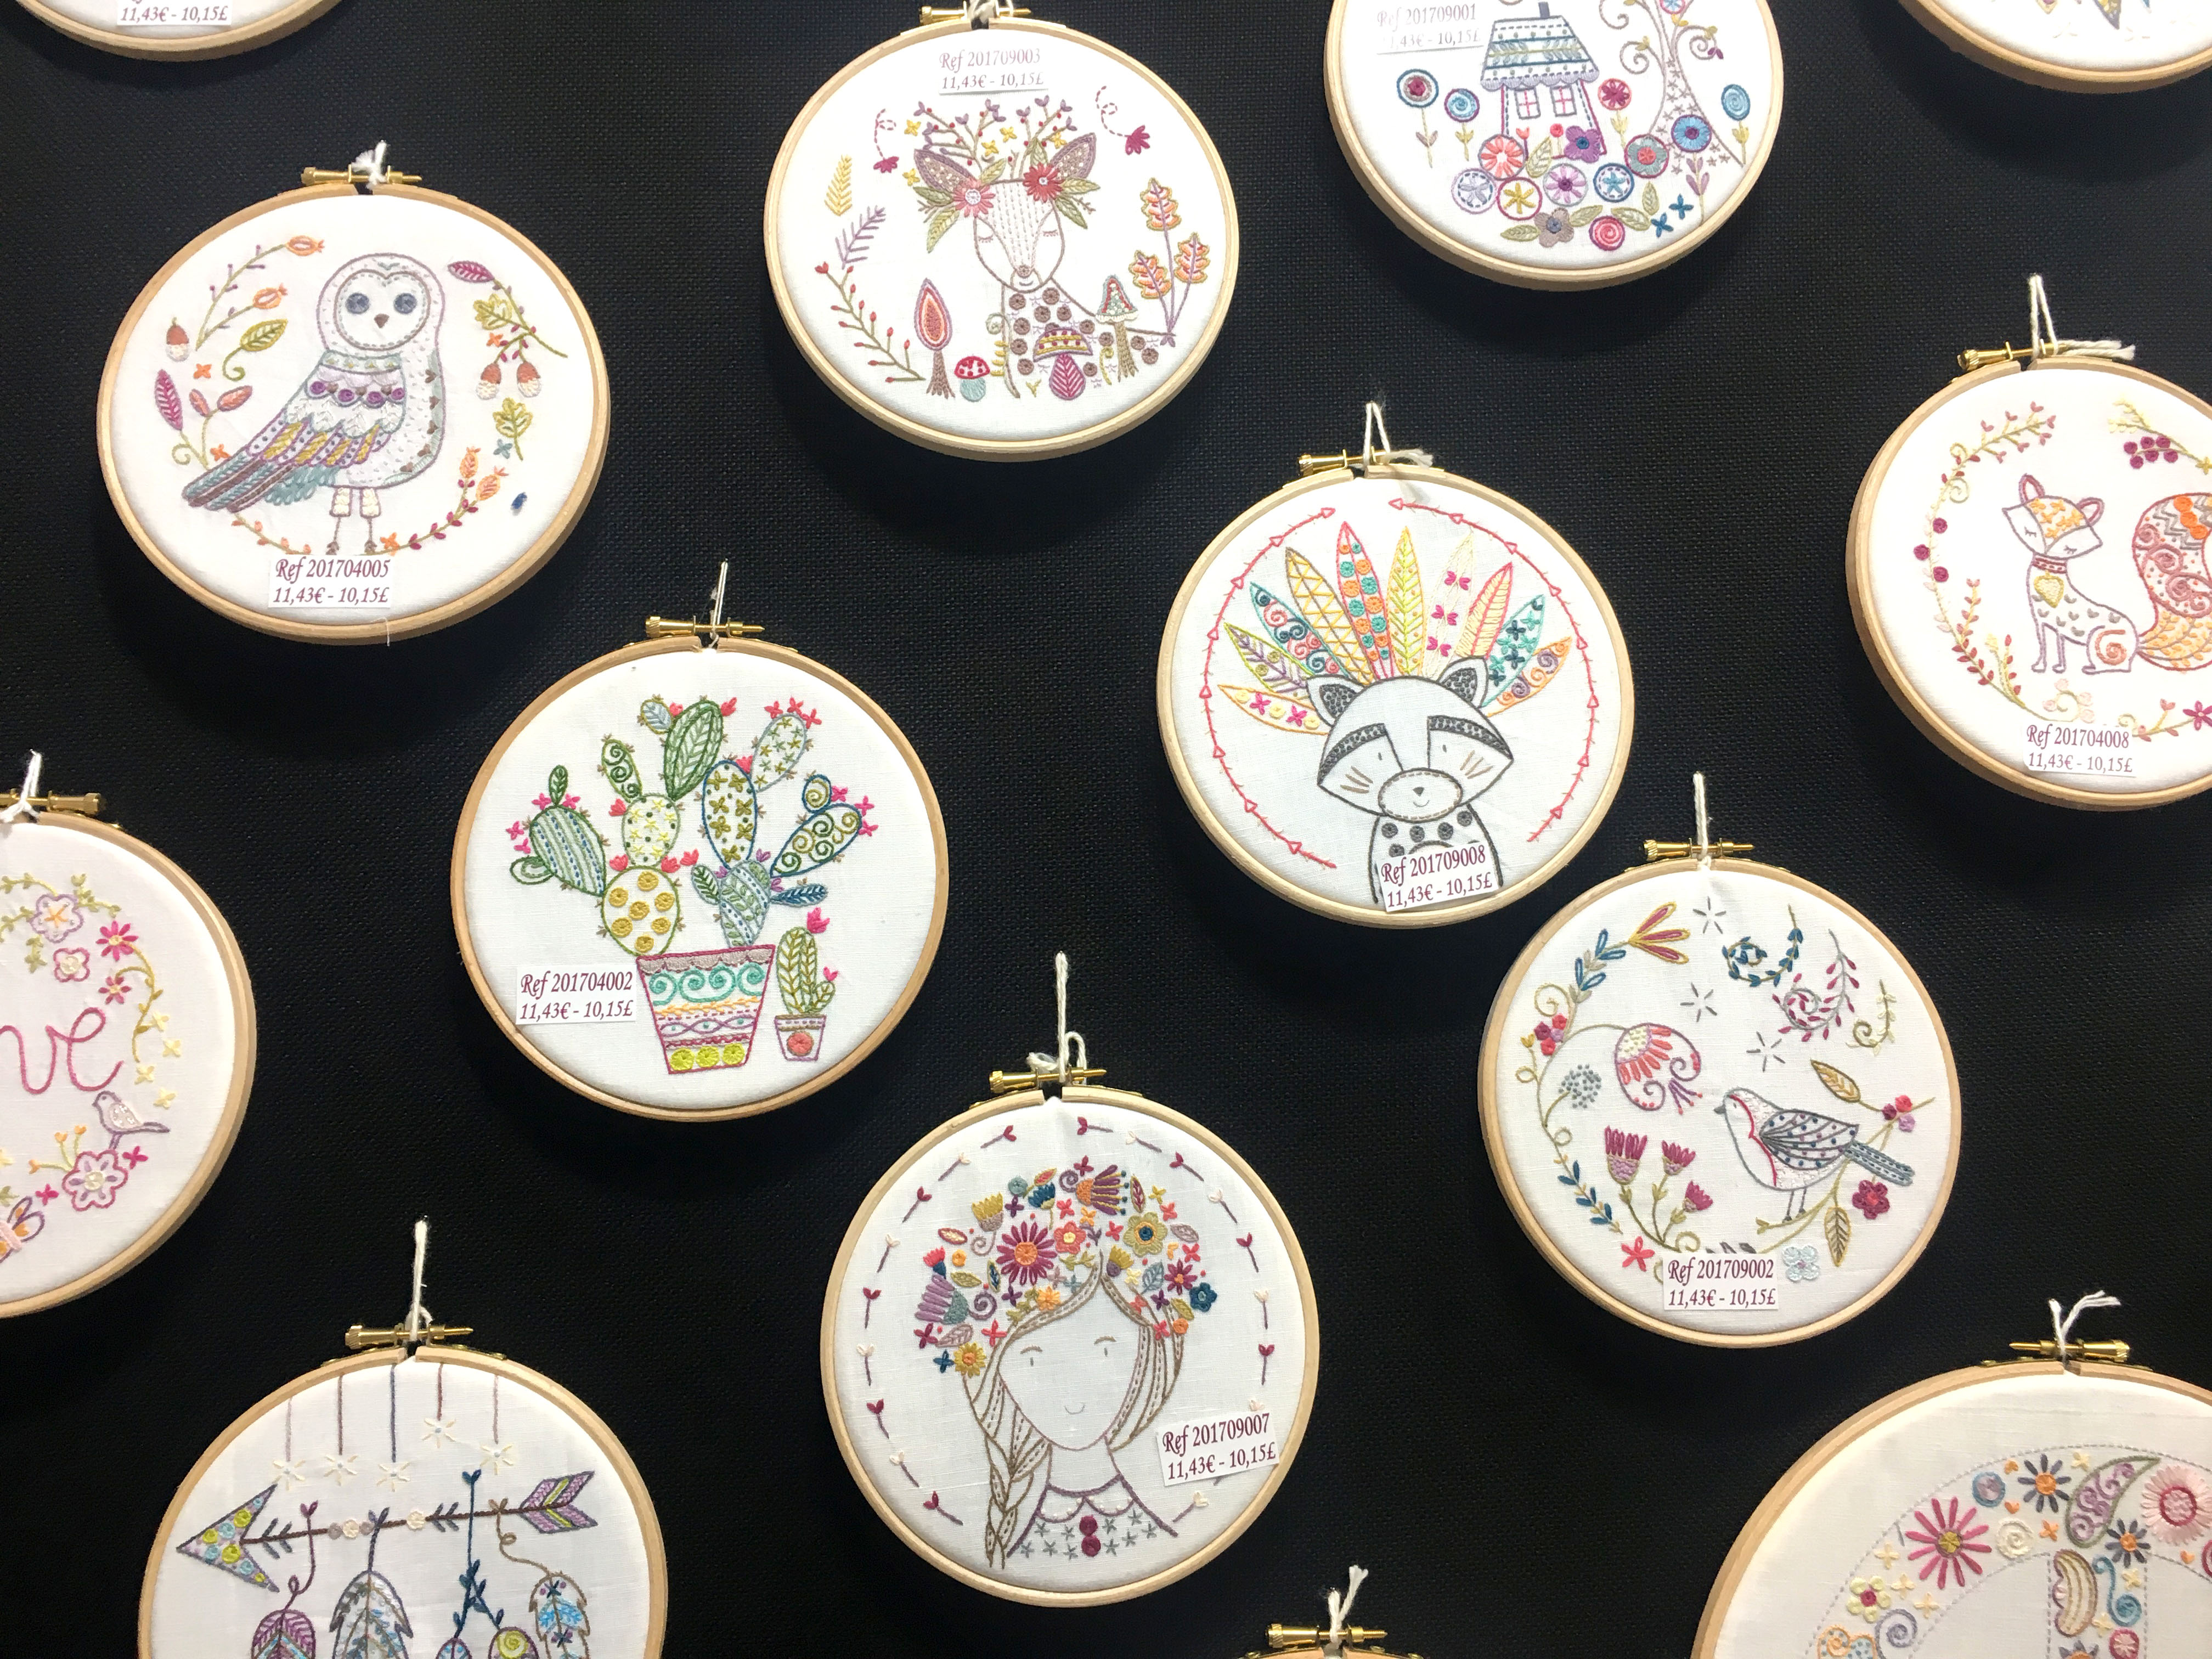 French Hand Embroidery from CHSI Stitches in Birmingham Un chat dans l'aiguille